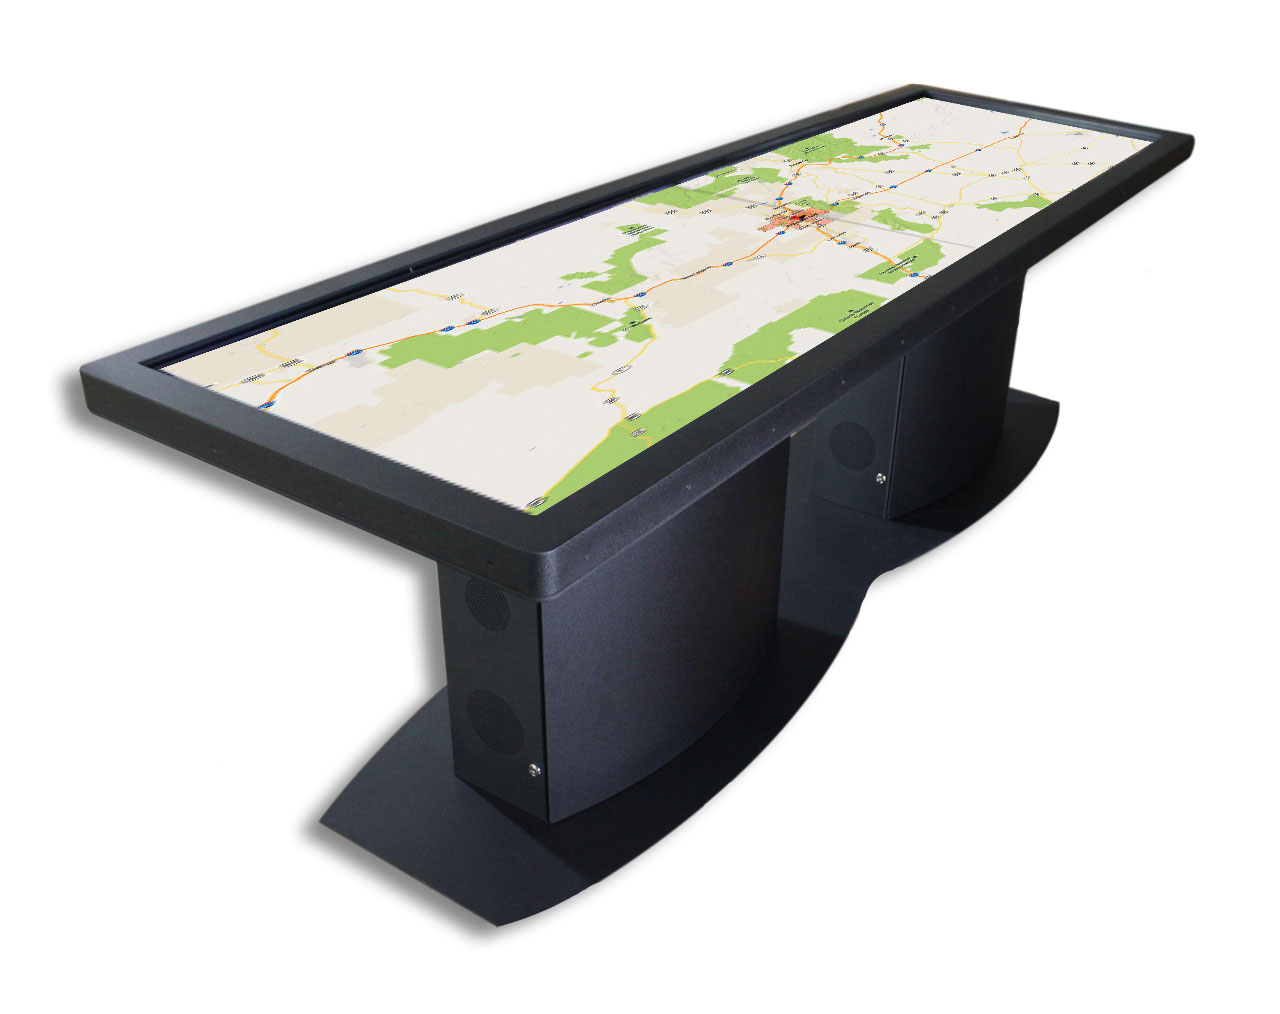 Image for the post: 'Pano 100″ Multitouch Table Featured in Gizmag'